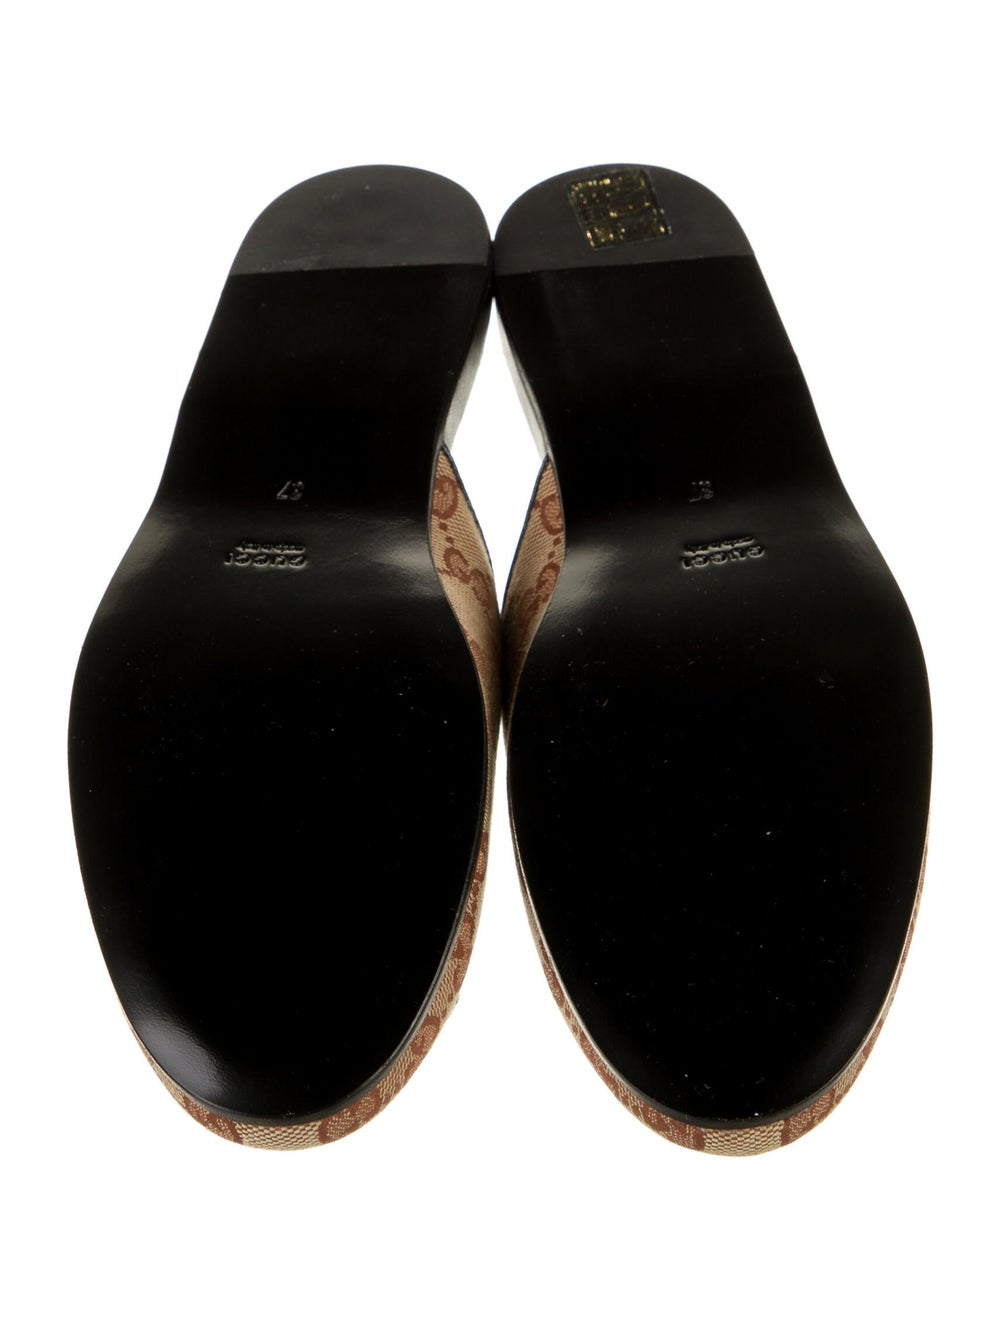 Gucci NY Yankees GG Canvas Mules w/ Tags - image 5